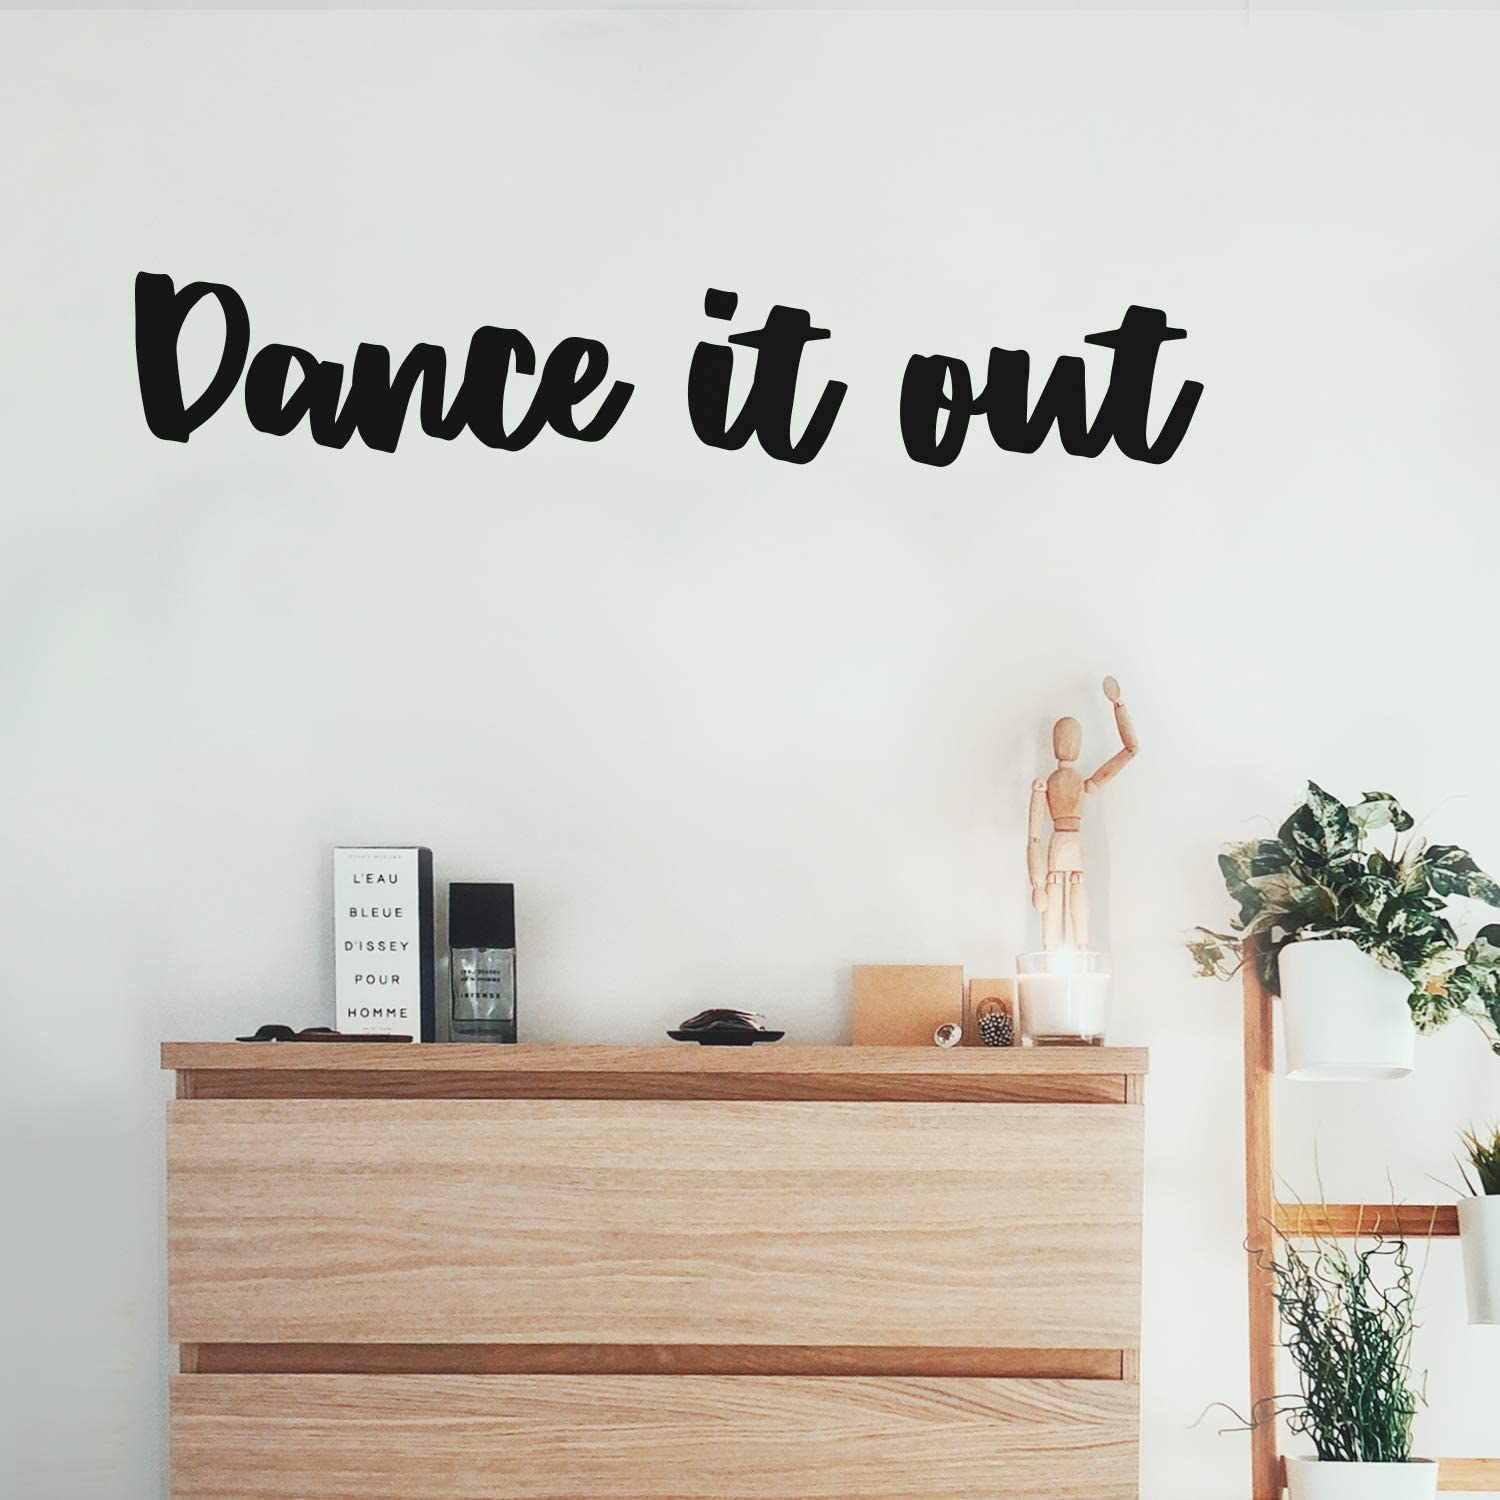 """Vinyl Wall Art Decal - Dance It Out - 6"""" x 35"""" - Trendy Inspirational Optimistic Good Vibes Cute Quote Sticker for Bedroom Closet Girls Room Playroom Yoga Gym Fitness Center Coffee Shop Decor (Black)"""